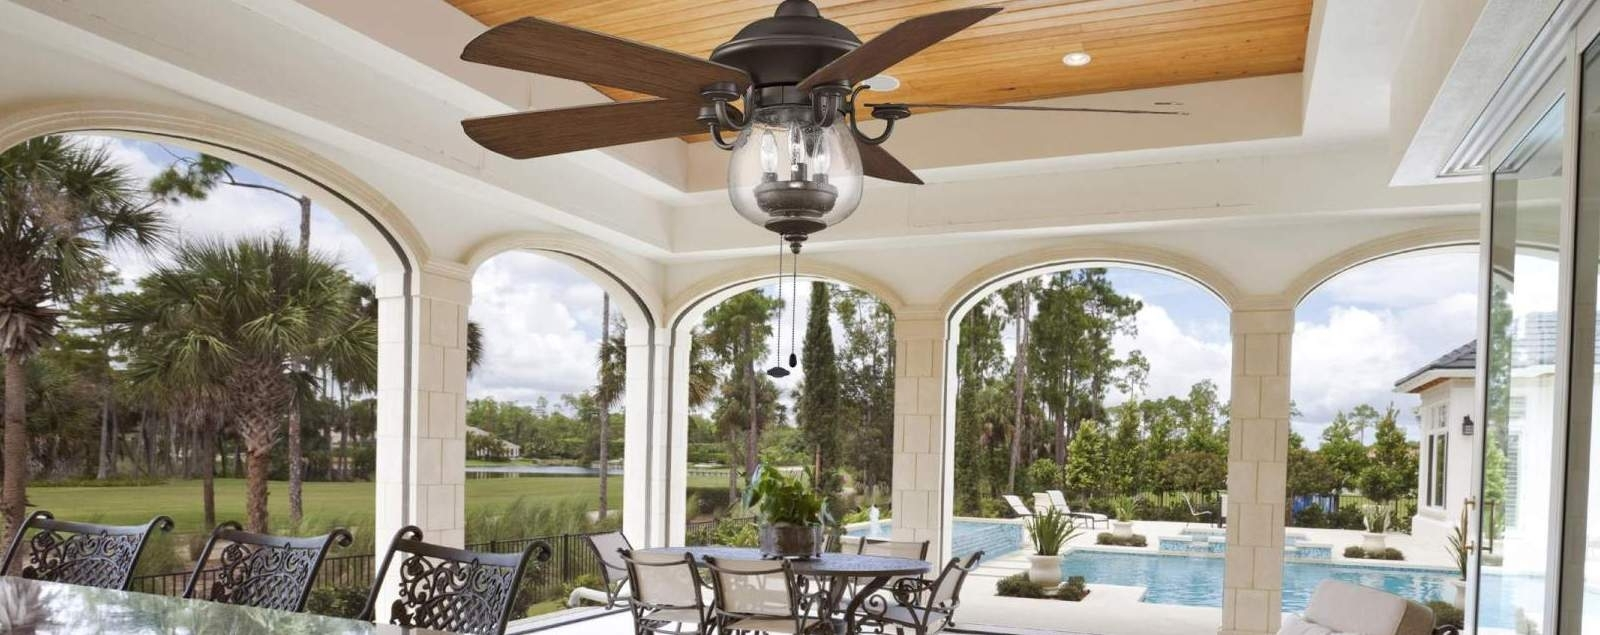 Latest Mission Style Outdoor Ceiling Fans With Lights Intended For Outdoor Ceiling Fans – Shop Wet, Dry, And Damp Rated Outdoor Fans (View 17 of 20)